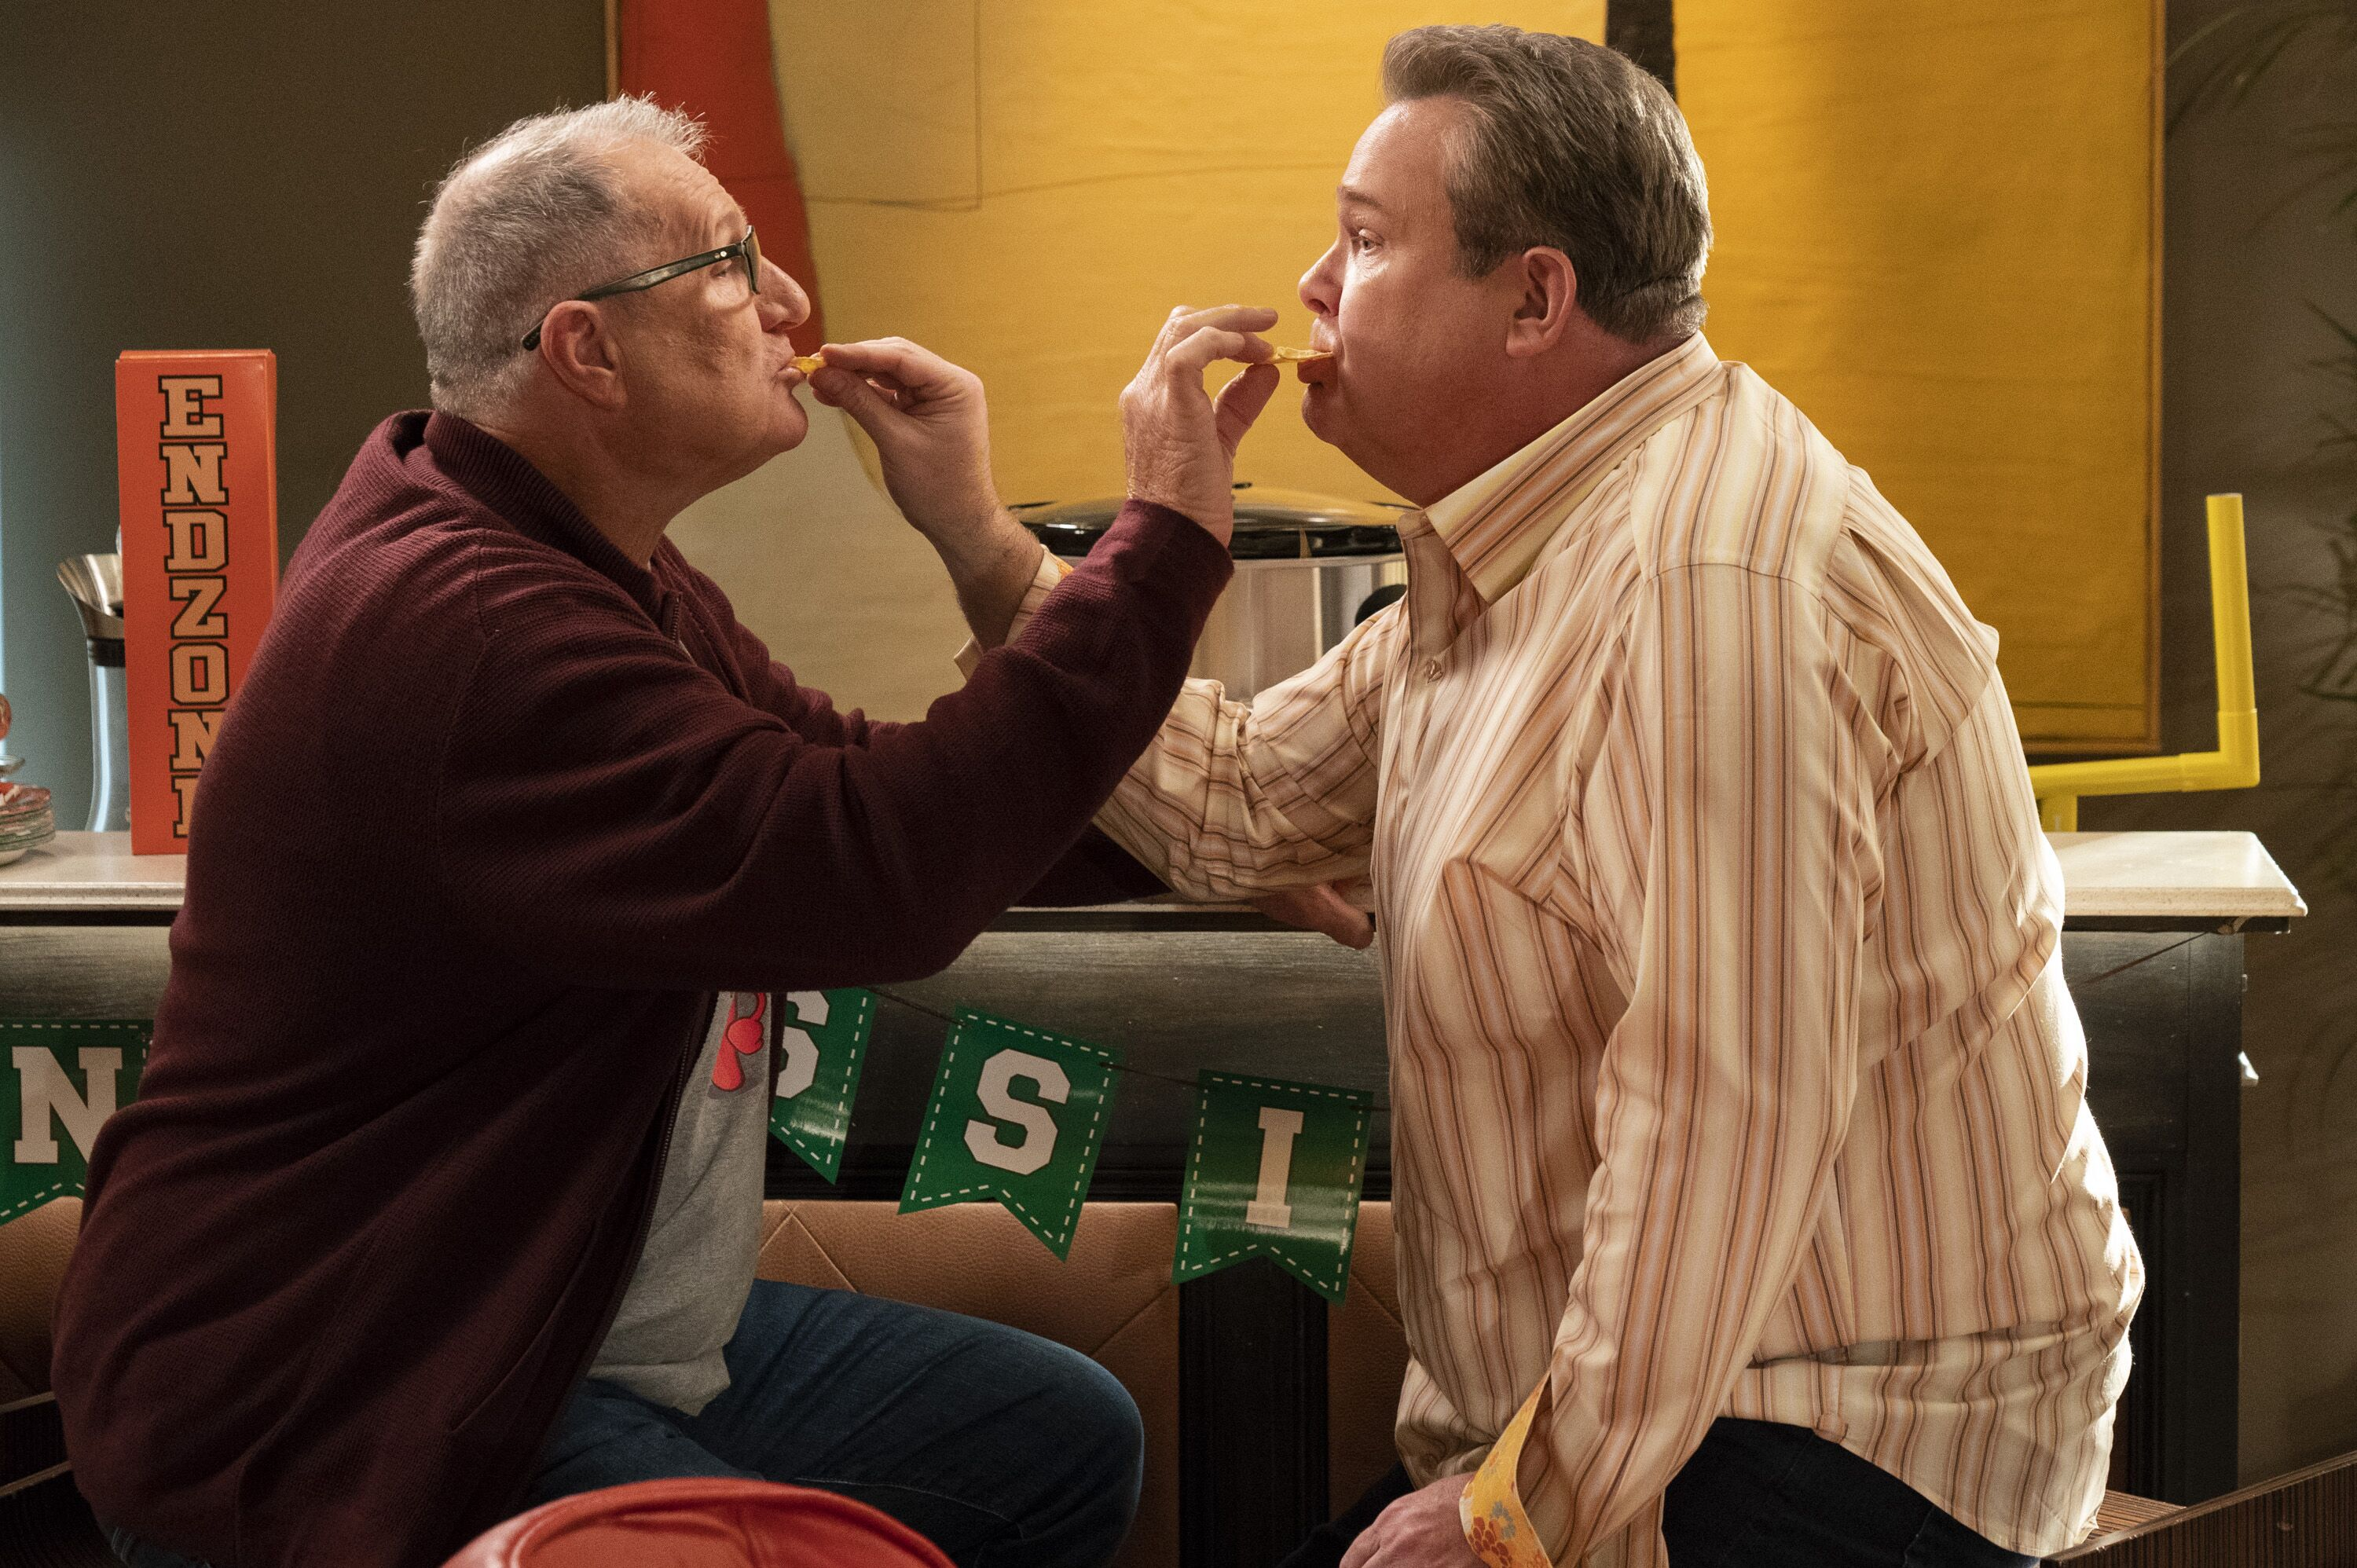 Is Modern Family on tonight, March 6?